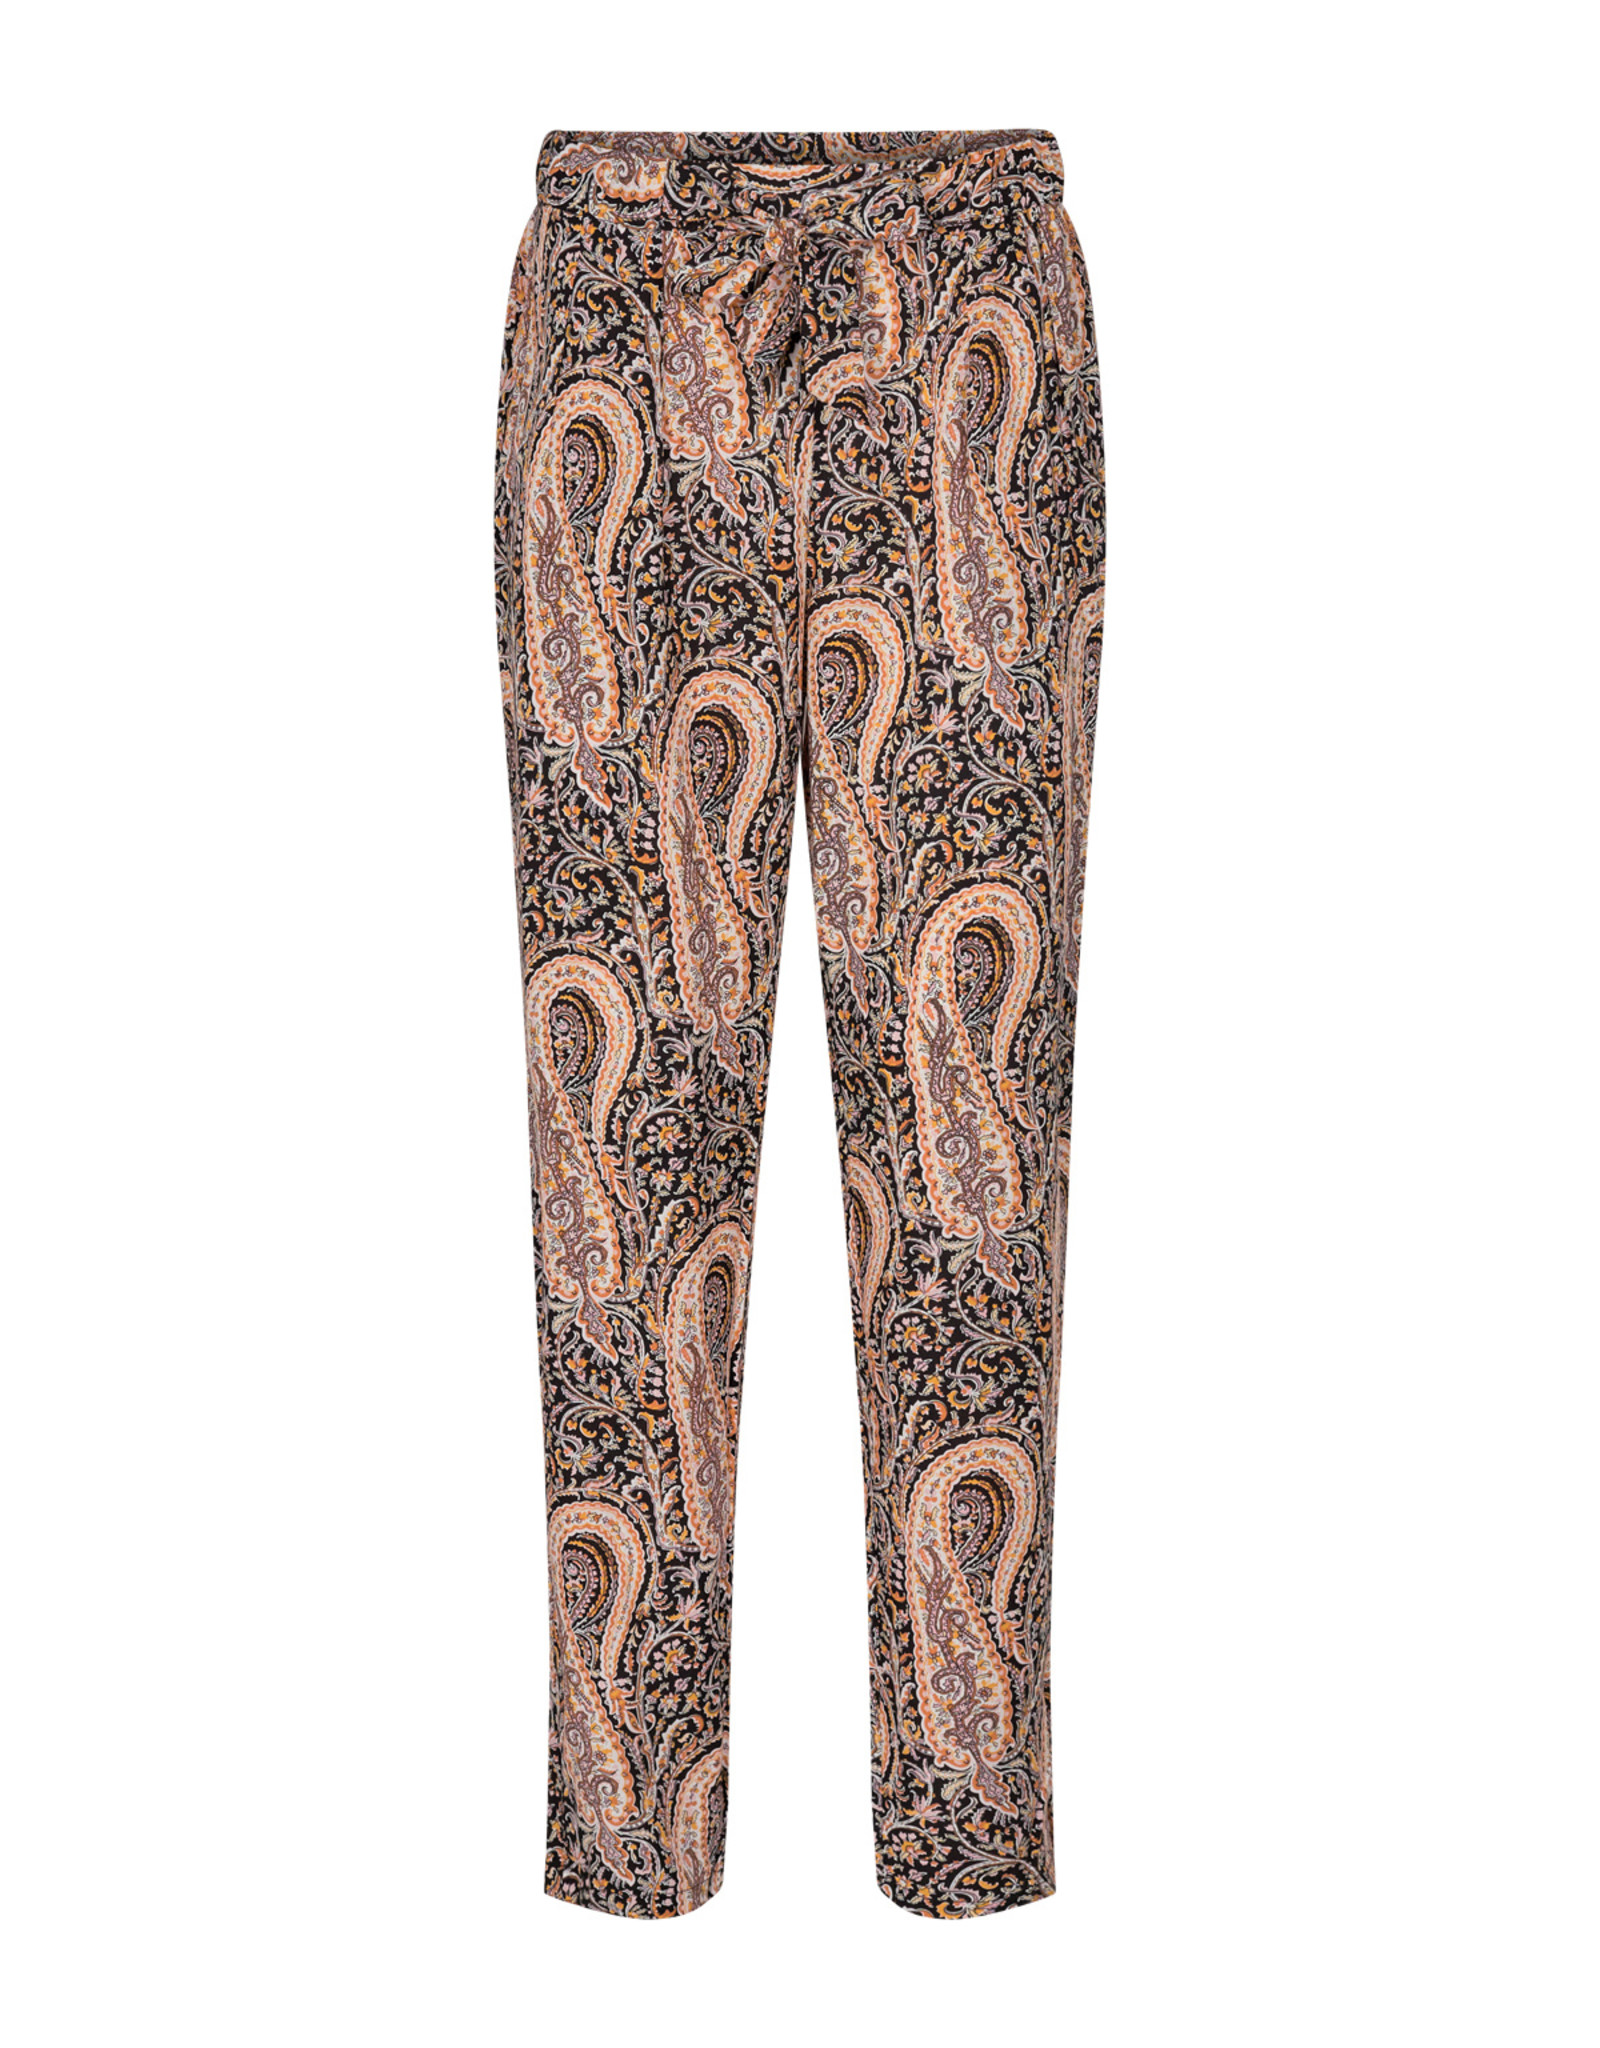 Soya Concept Soya Concept Olga 4  Paisley Pattern Pull on Pant with Pockets